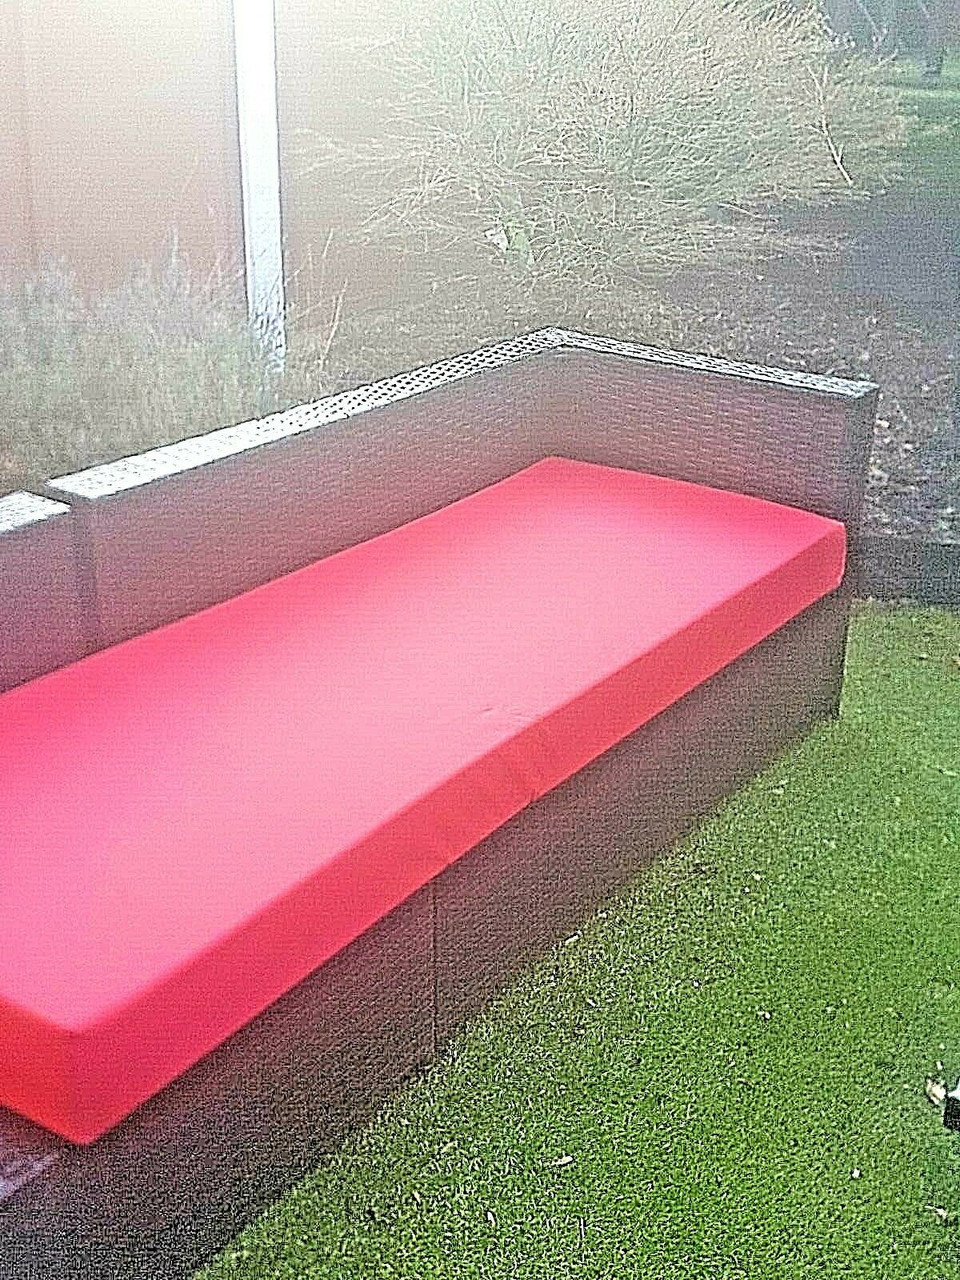 Kosipad Pallet Seating Bench Garden Furniture Foam Pads Waterproof Removable Covers Red